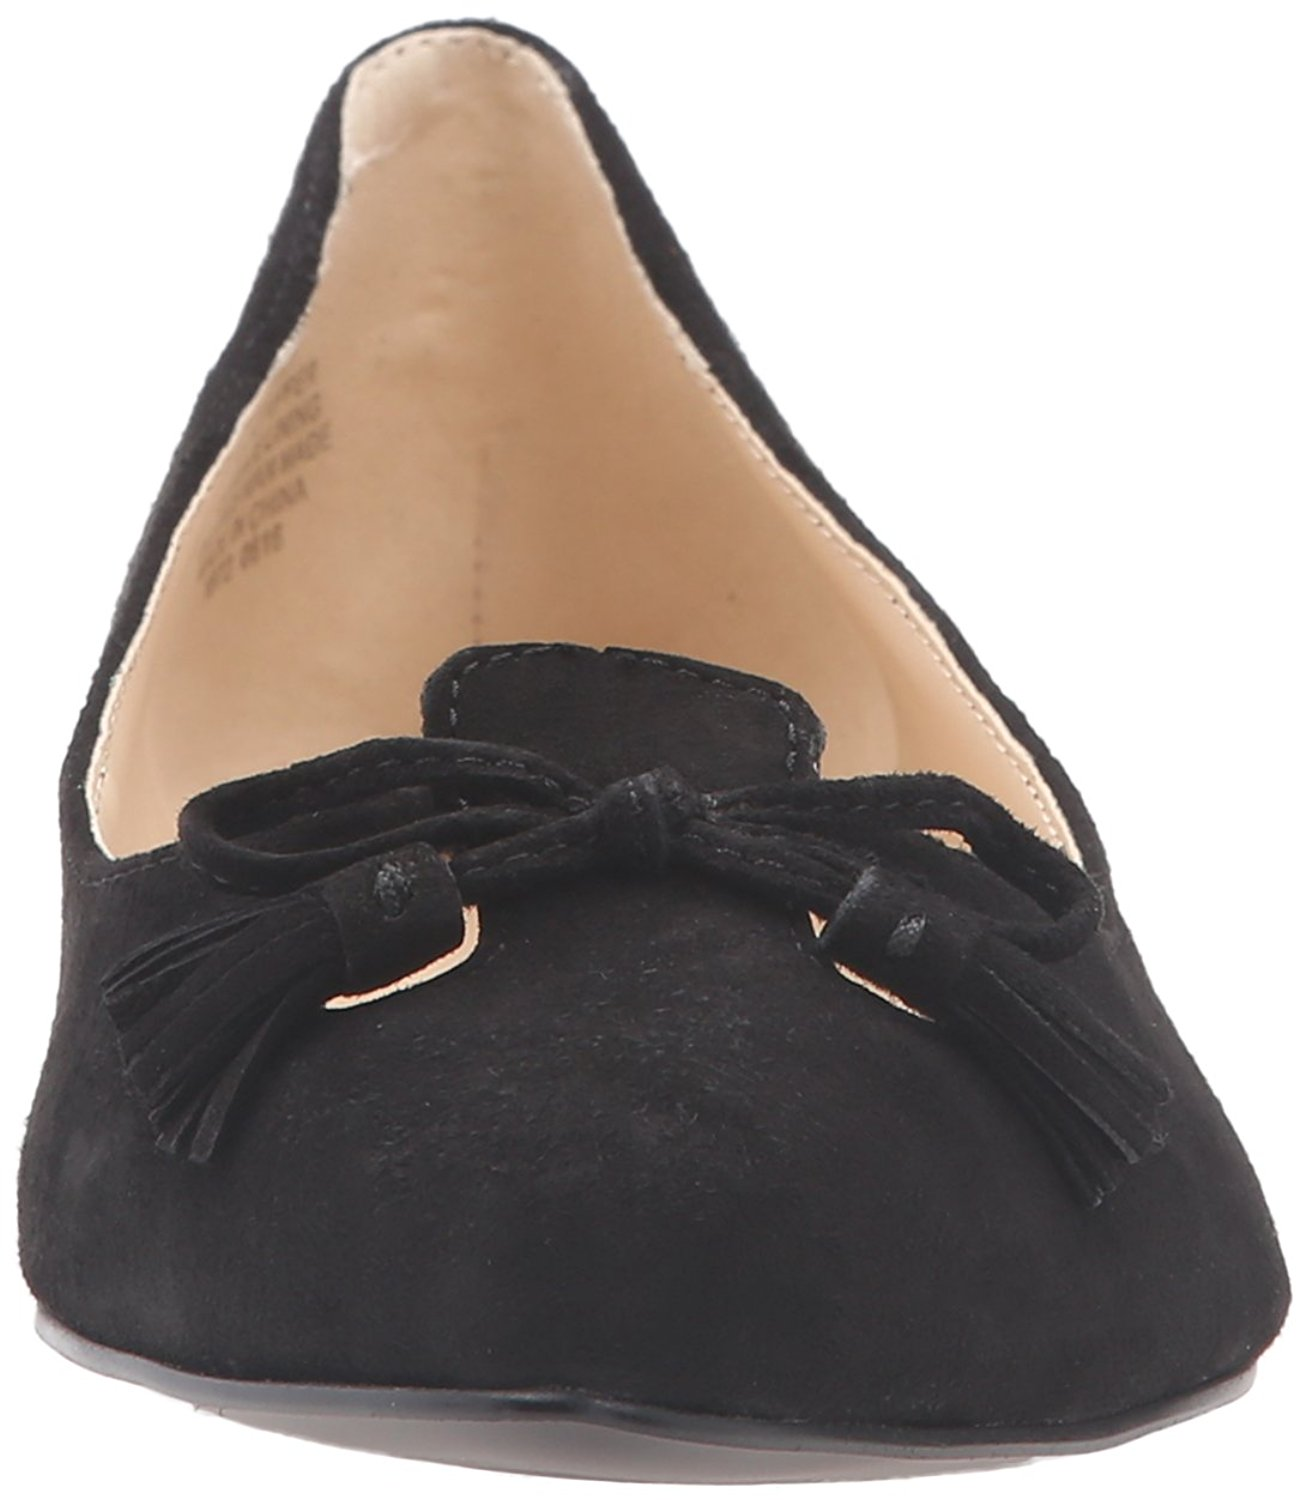 Crystal039s black ballet flats shoeplay barefoot muddy